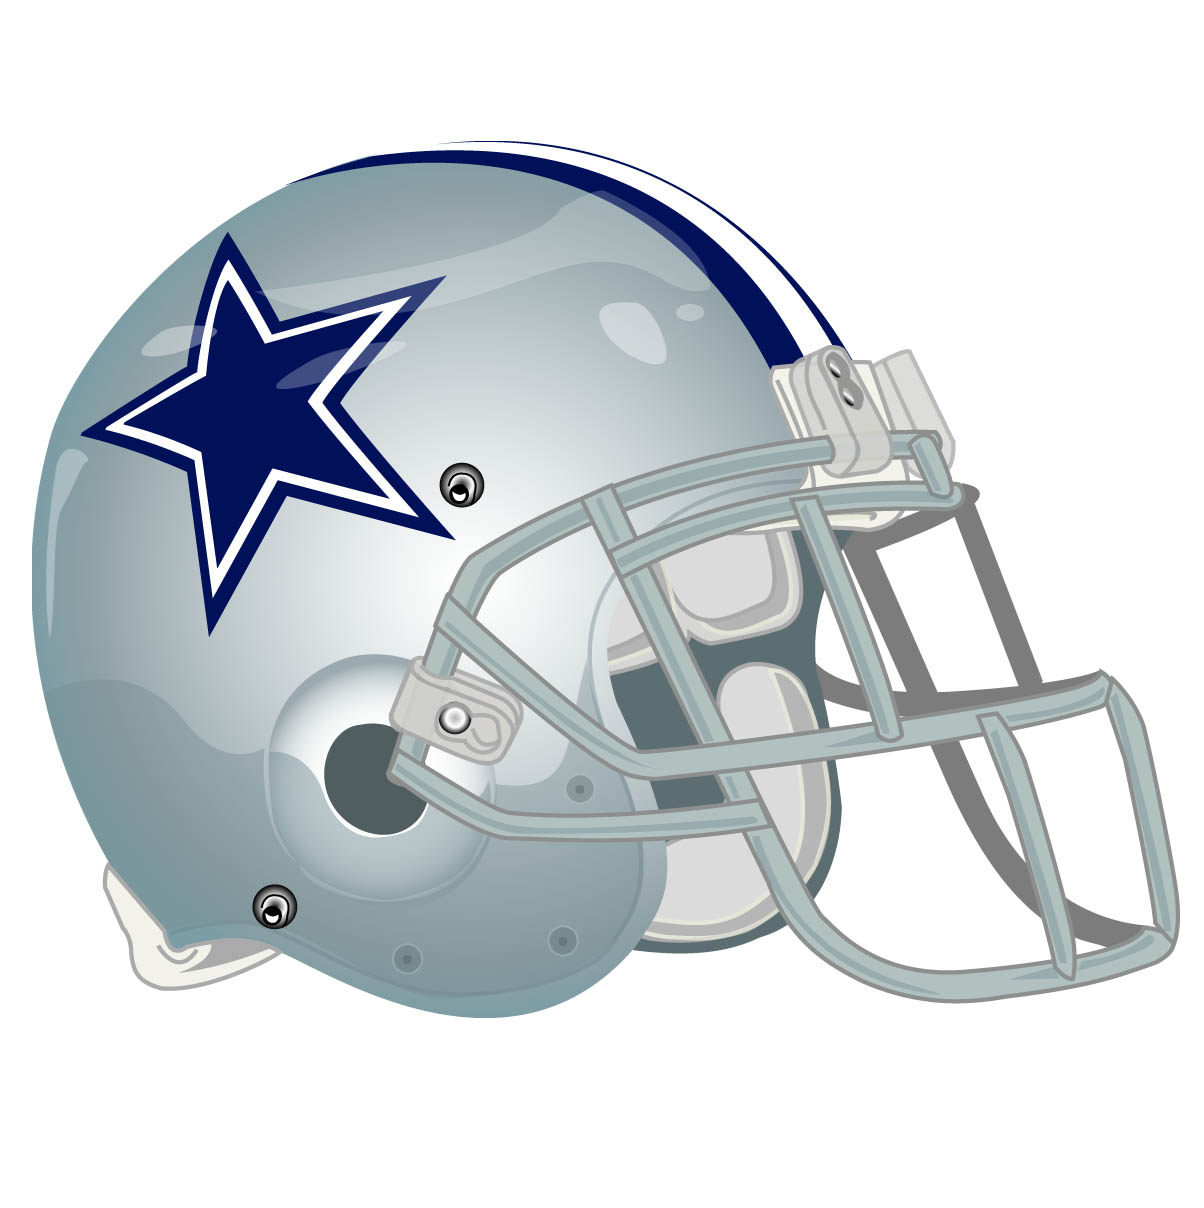 13 Dallas Cowboys Stars Logo Free Cliparts That You Can Download To